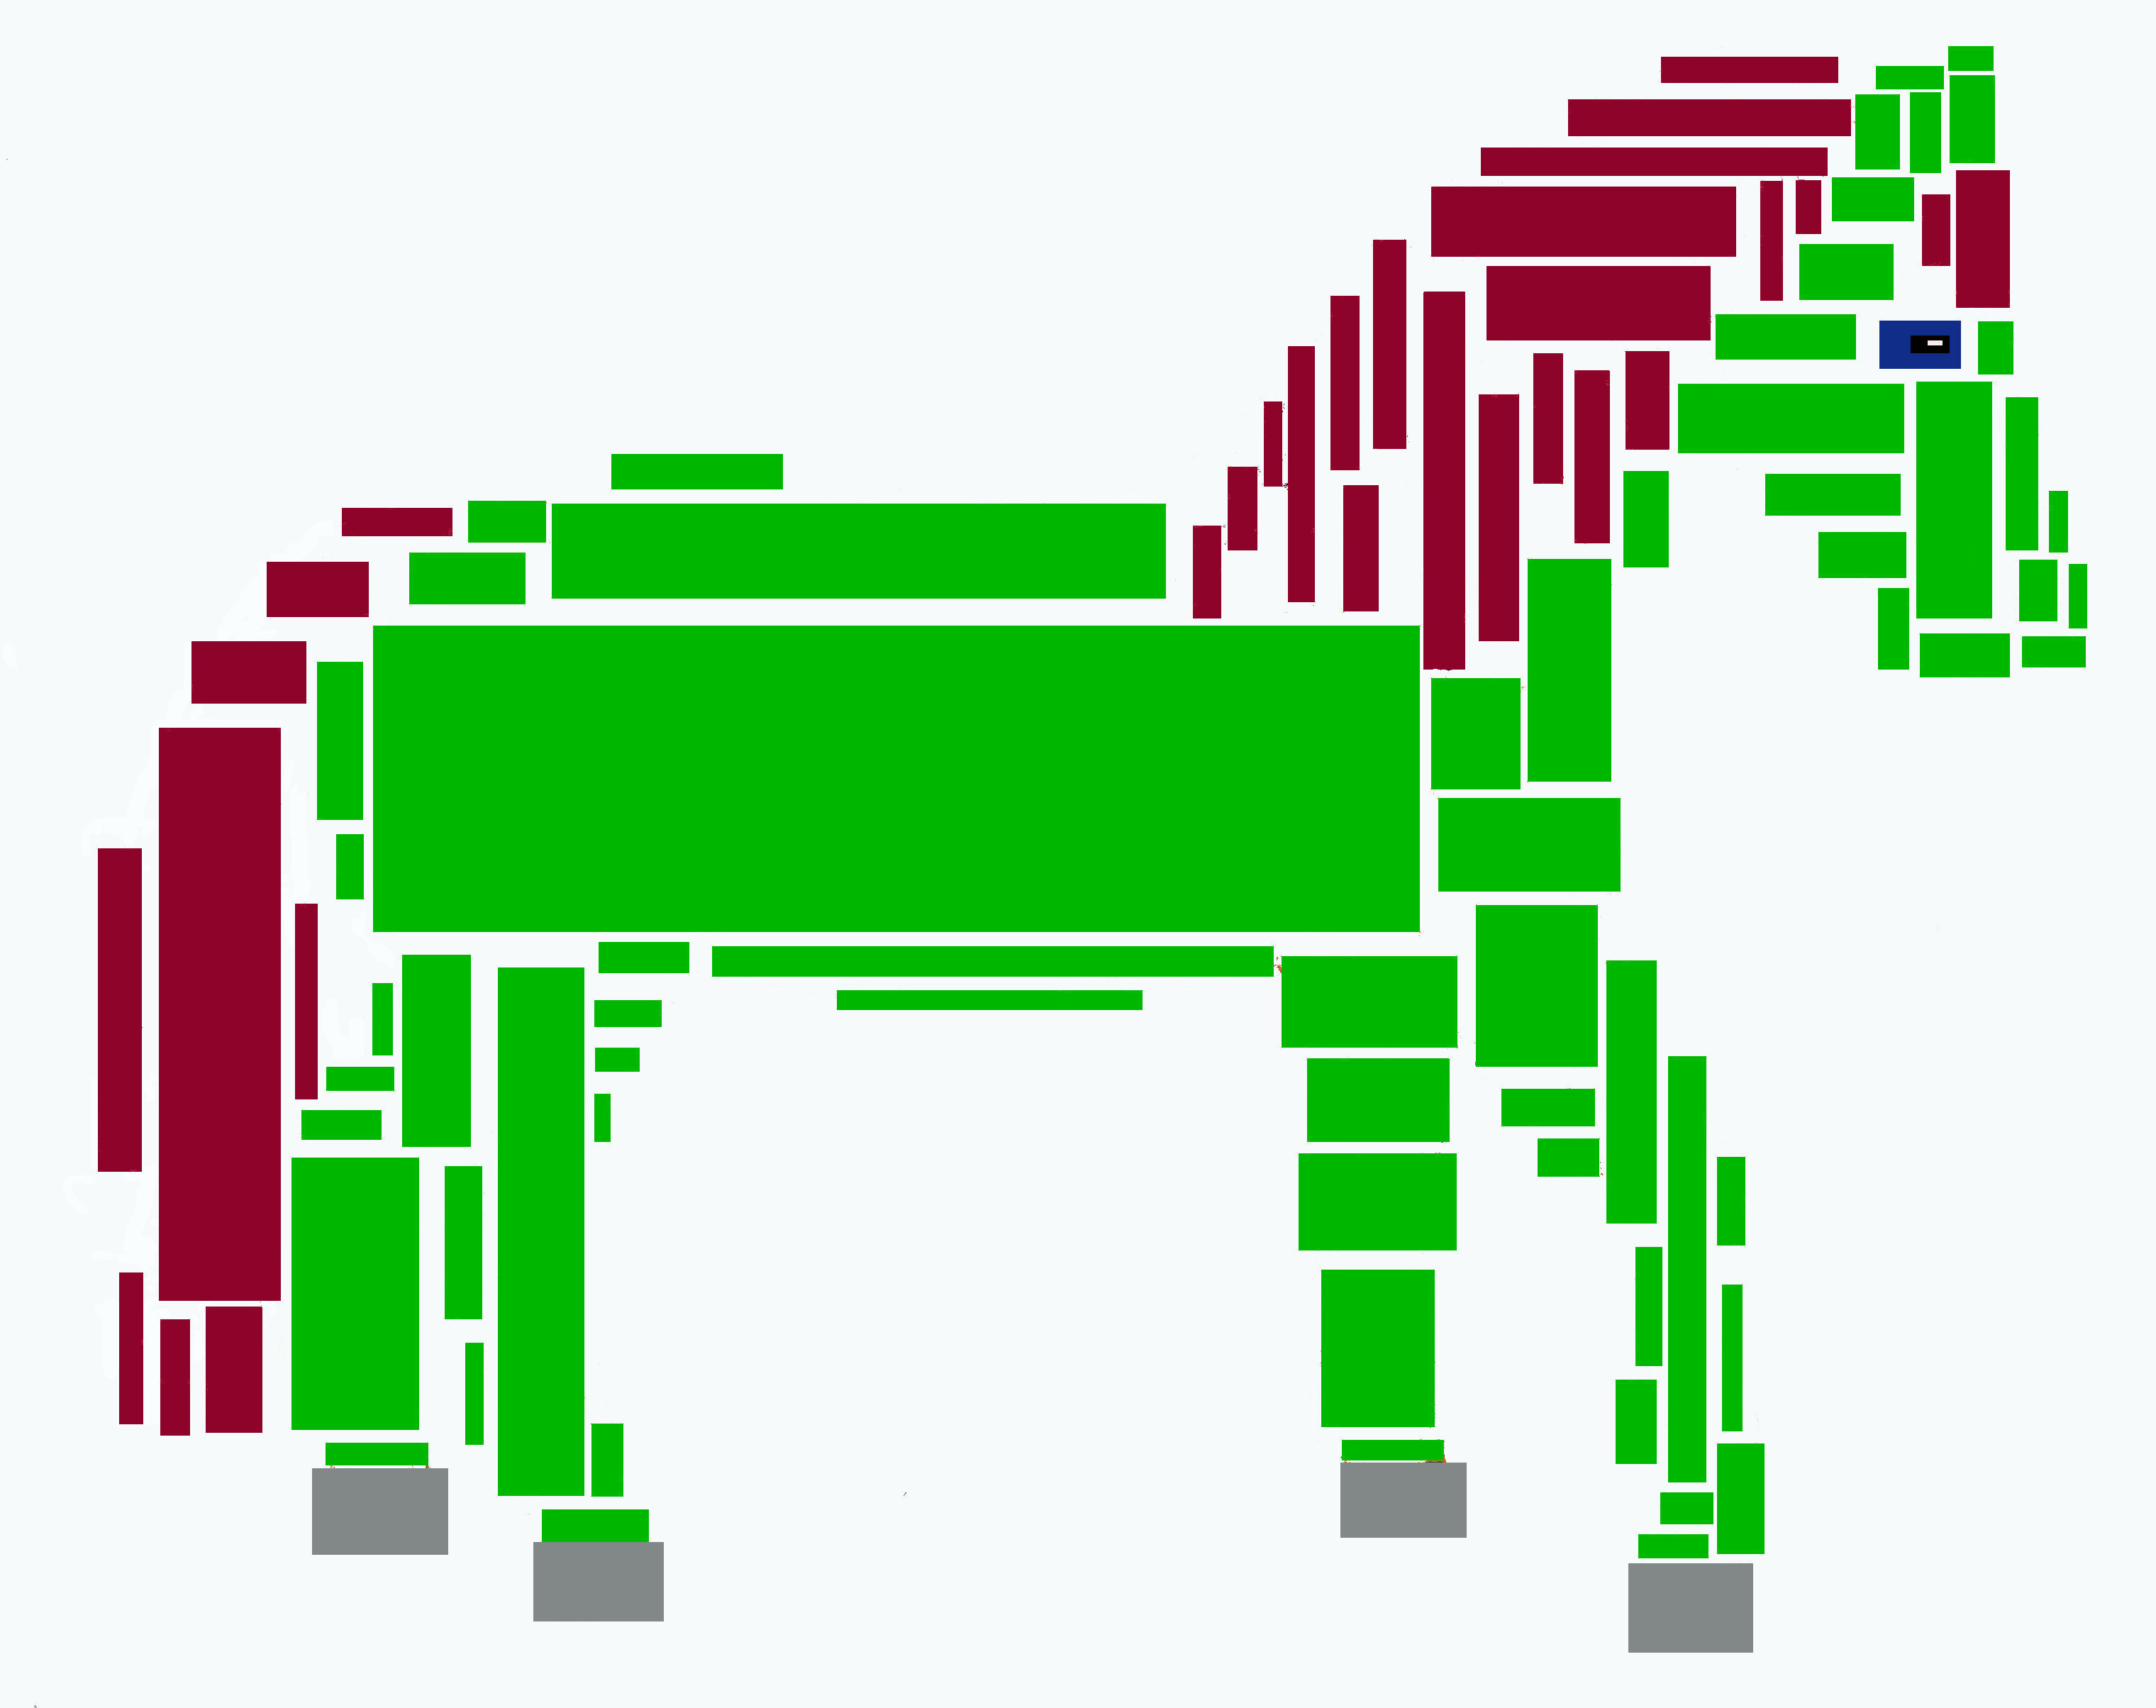 Red and green horse made of rectangles